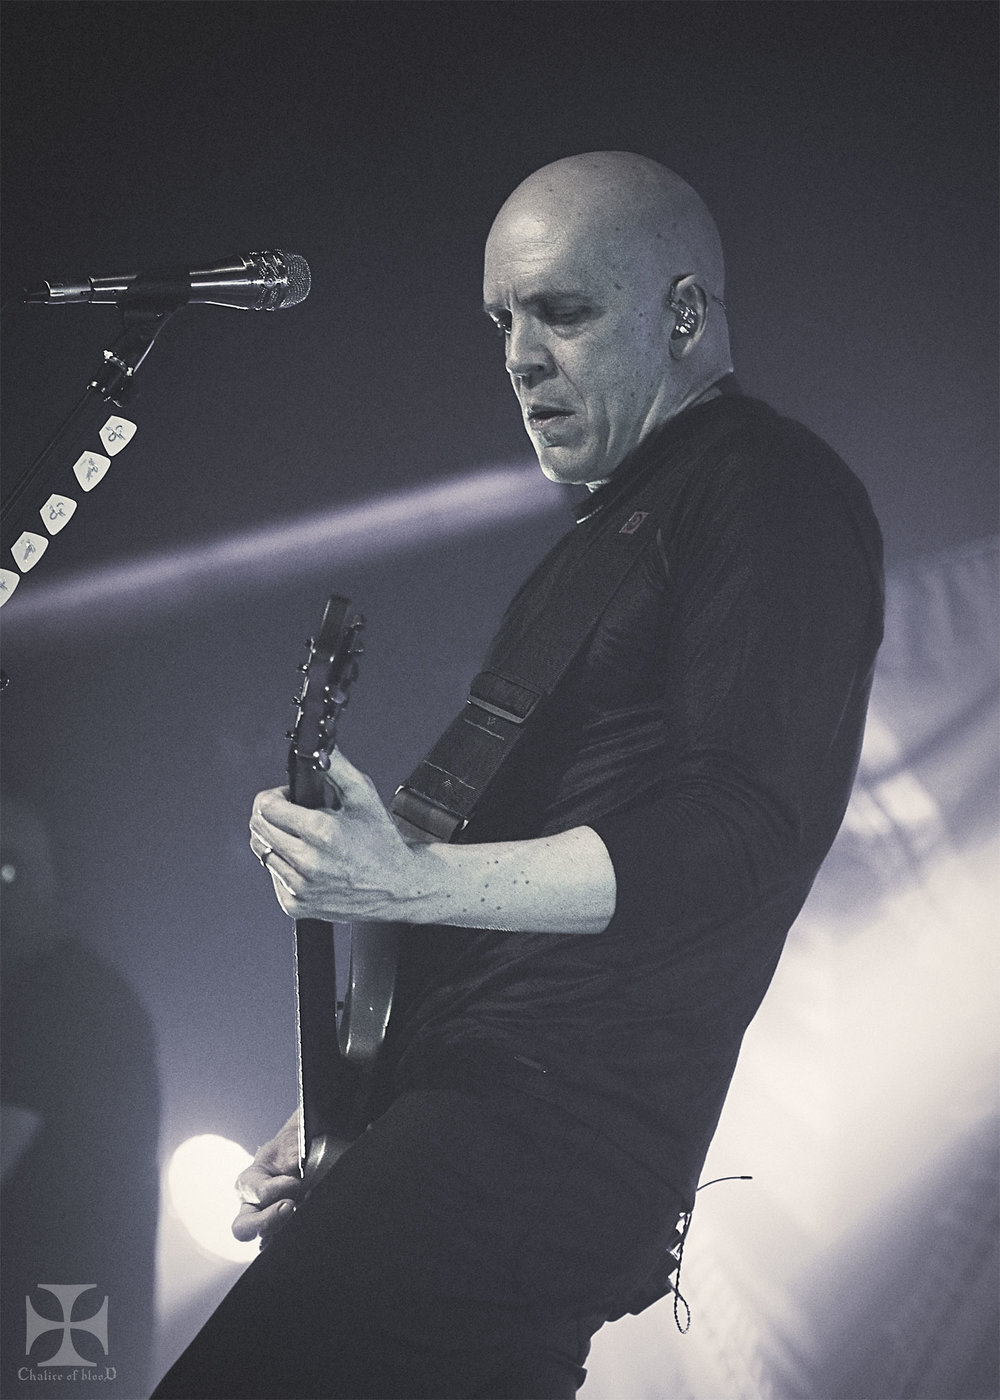 2017.05-Devin-Townsend---40-Exposure-watermarked.jpg